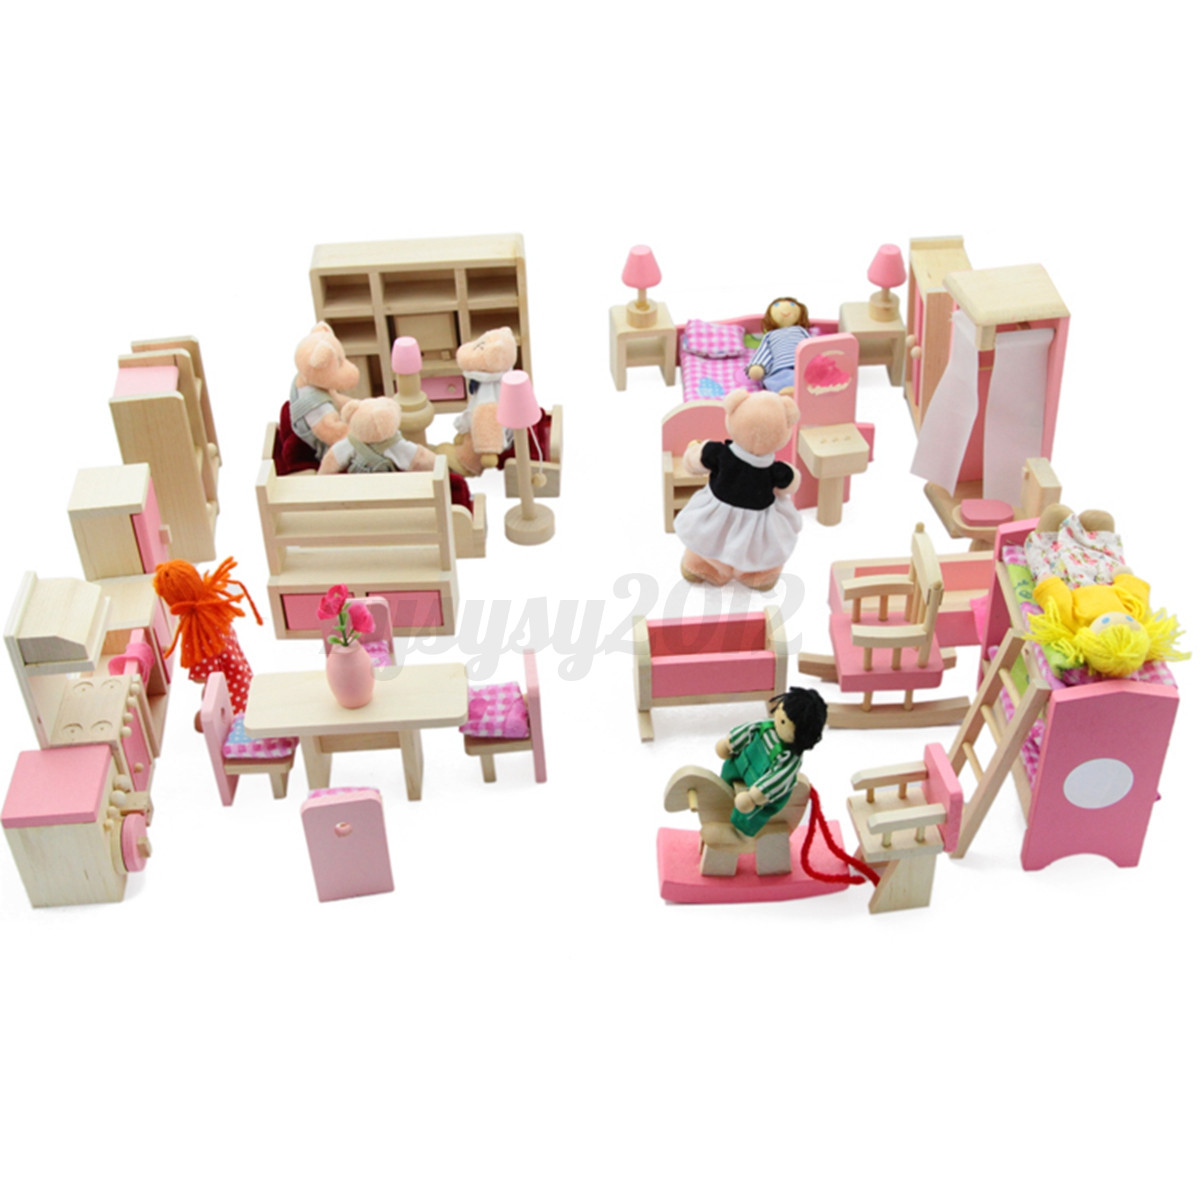 Superb img of Set Rooms   6 Dolls Wooden Furniture Doll House Family Miniature  with #B8A713 color and 1200x1200 pixels